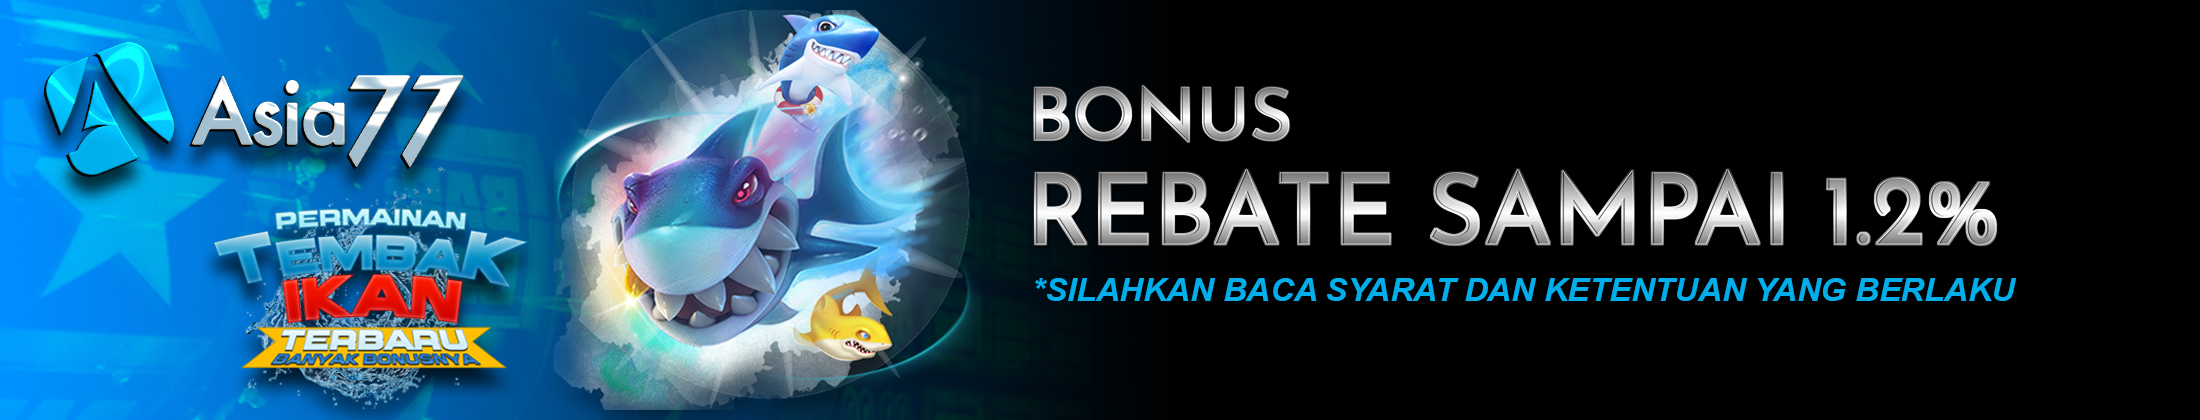 BONUS REBATE UP TO 1.2%